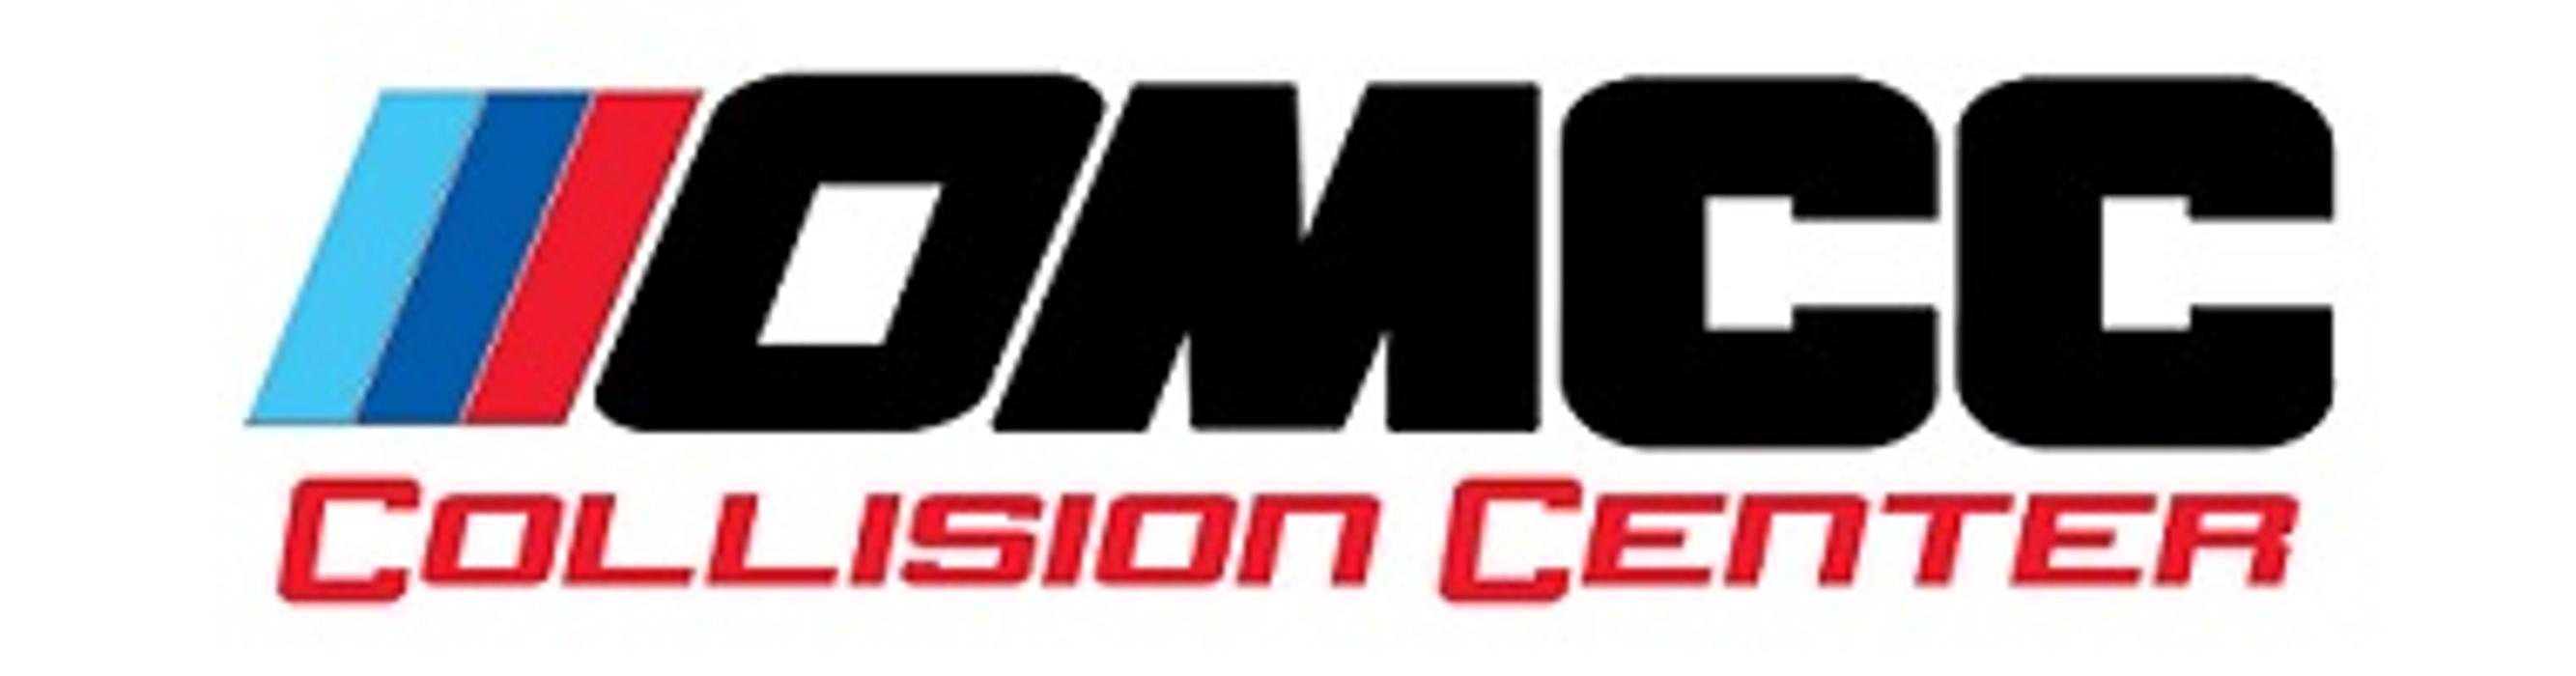 Owings Mills Collision Center - Owings Mills, MD